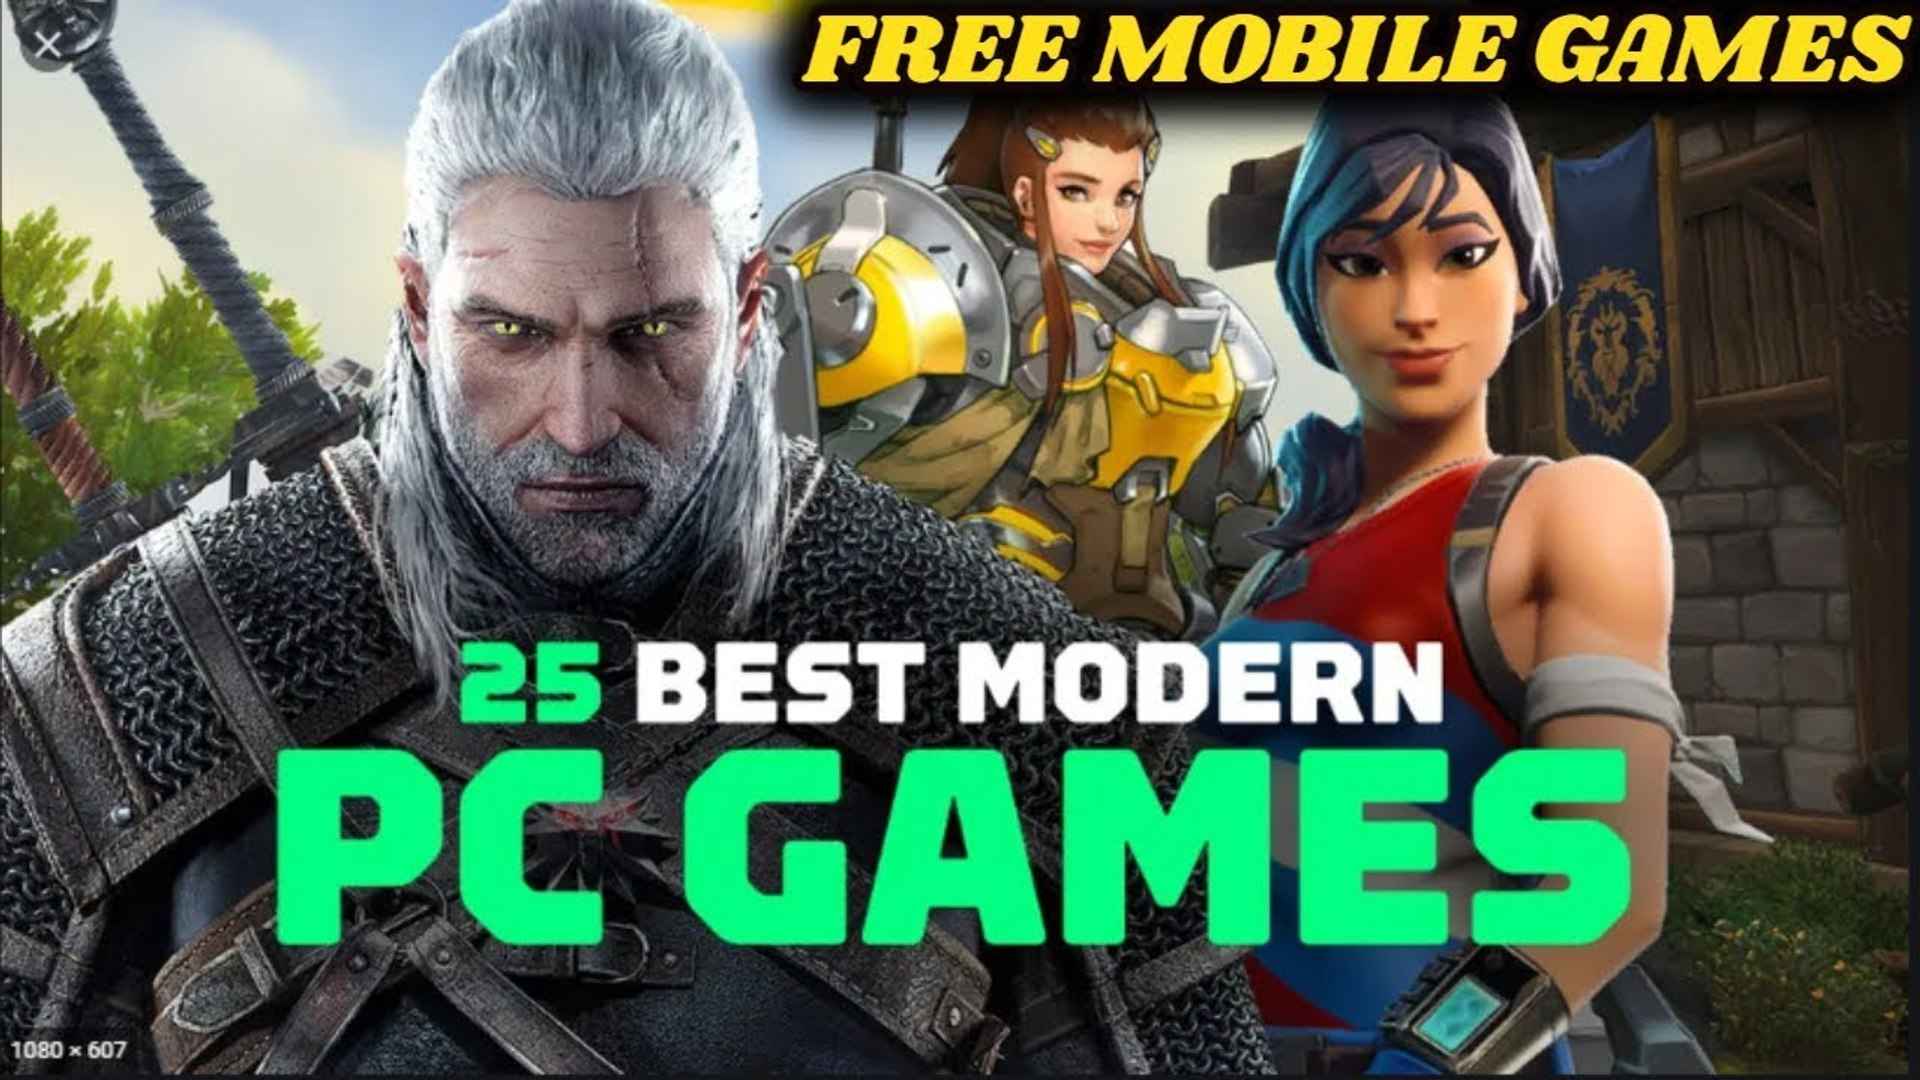 Free mobile games 15 best